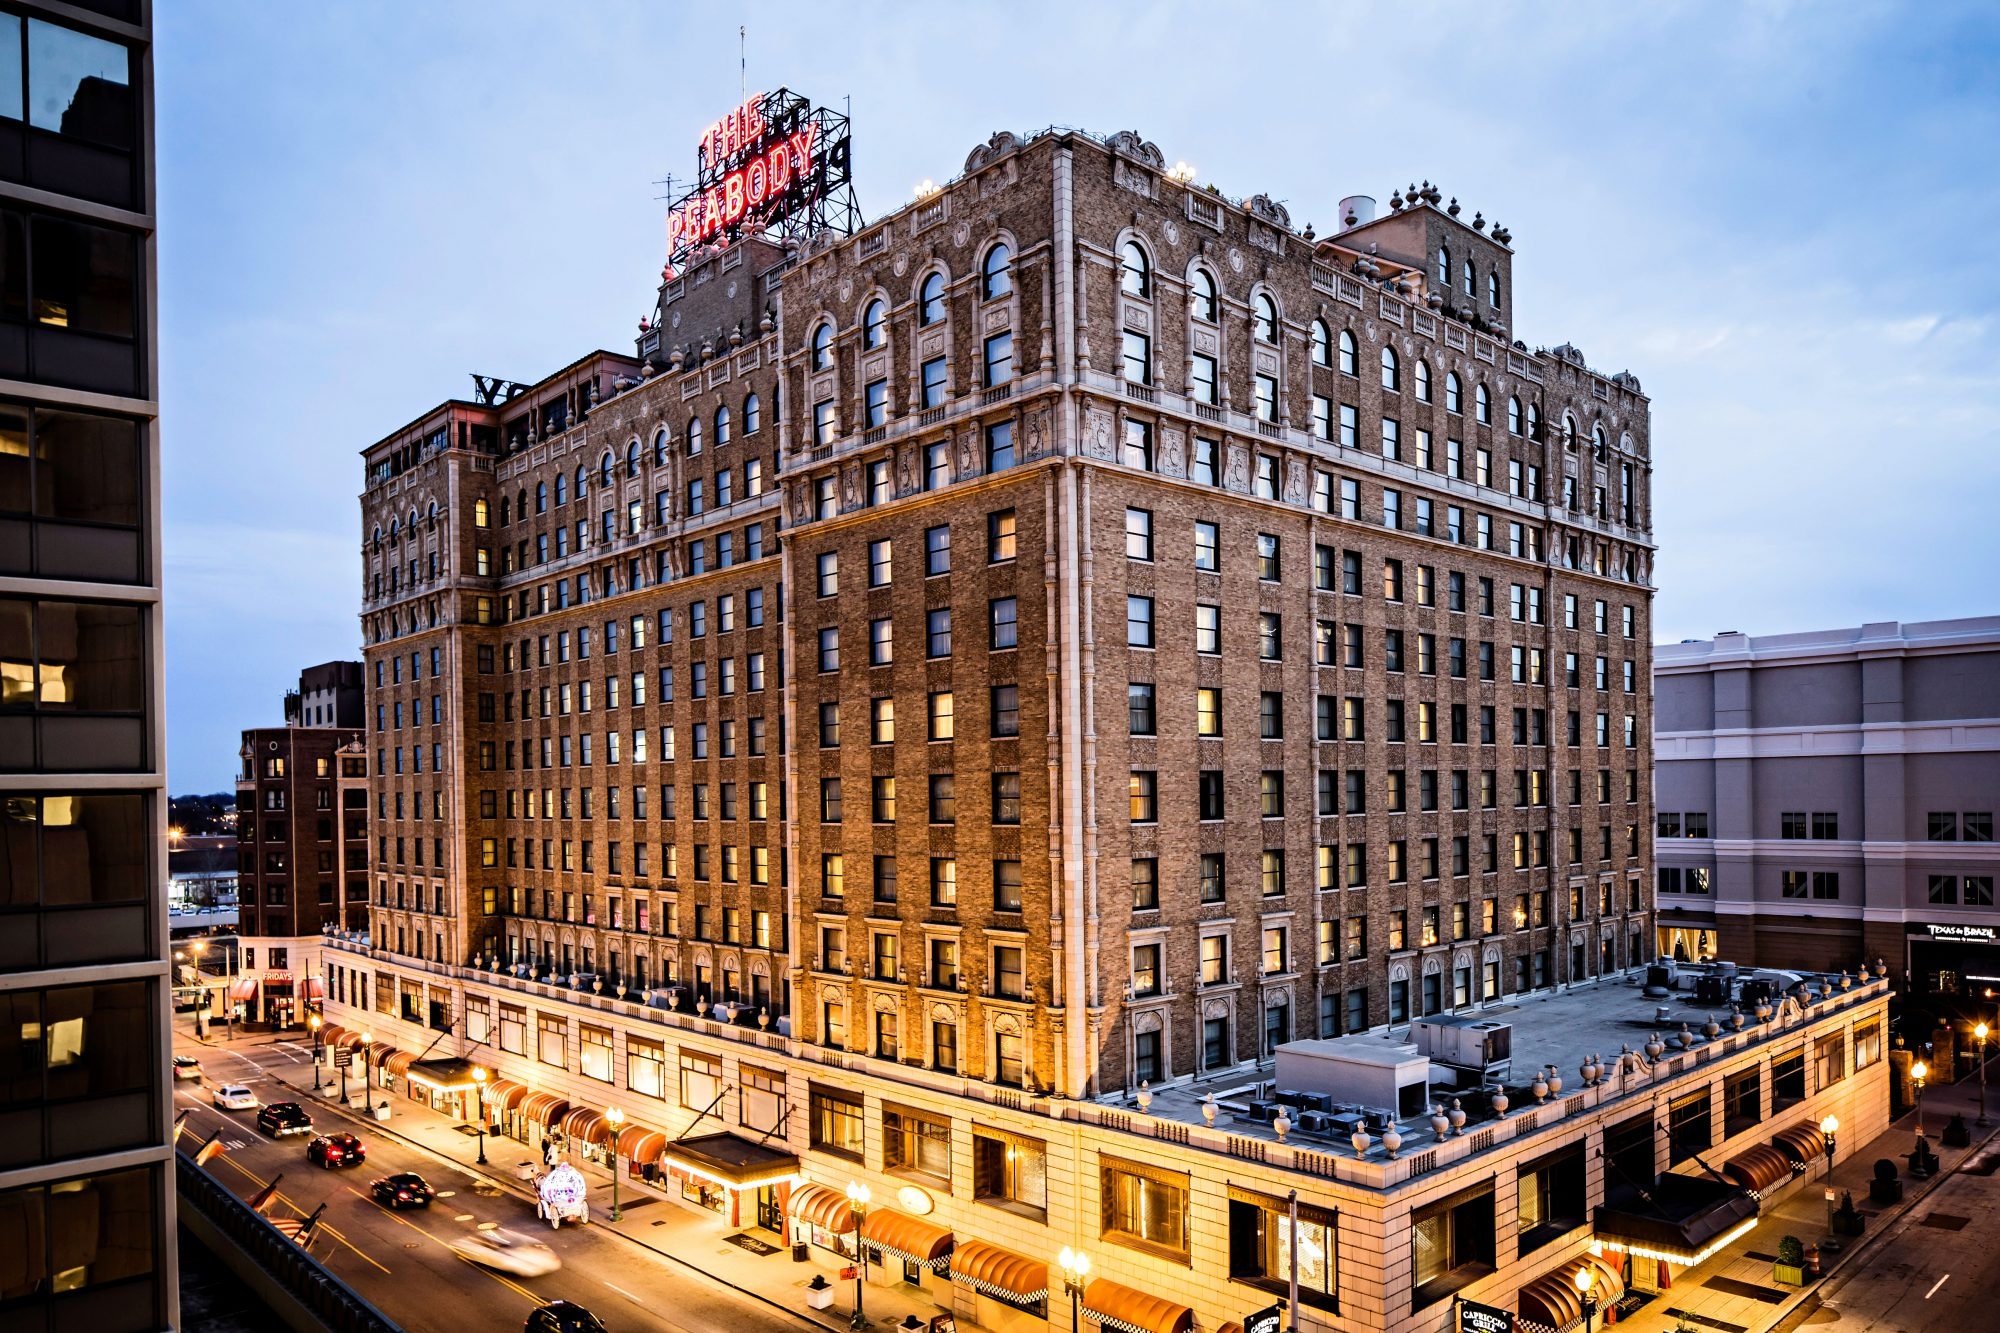 1. The Peabody Memphis (Memphis, Tennessee)